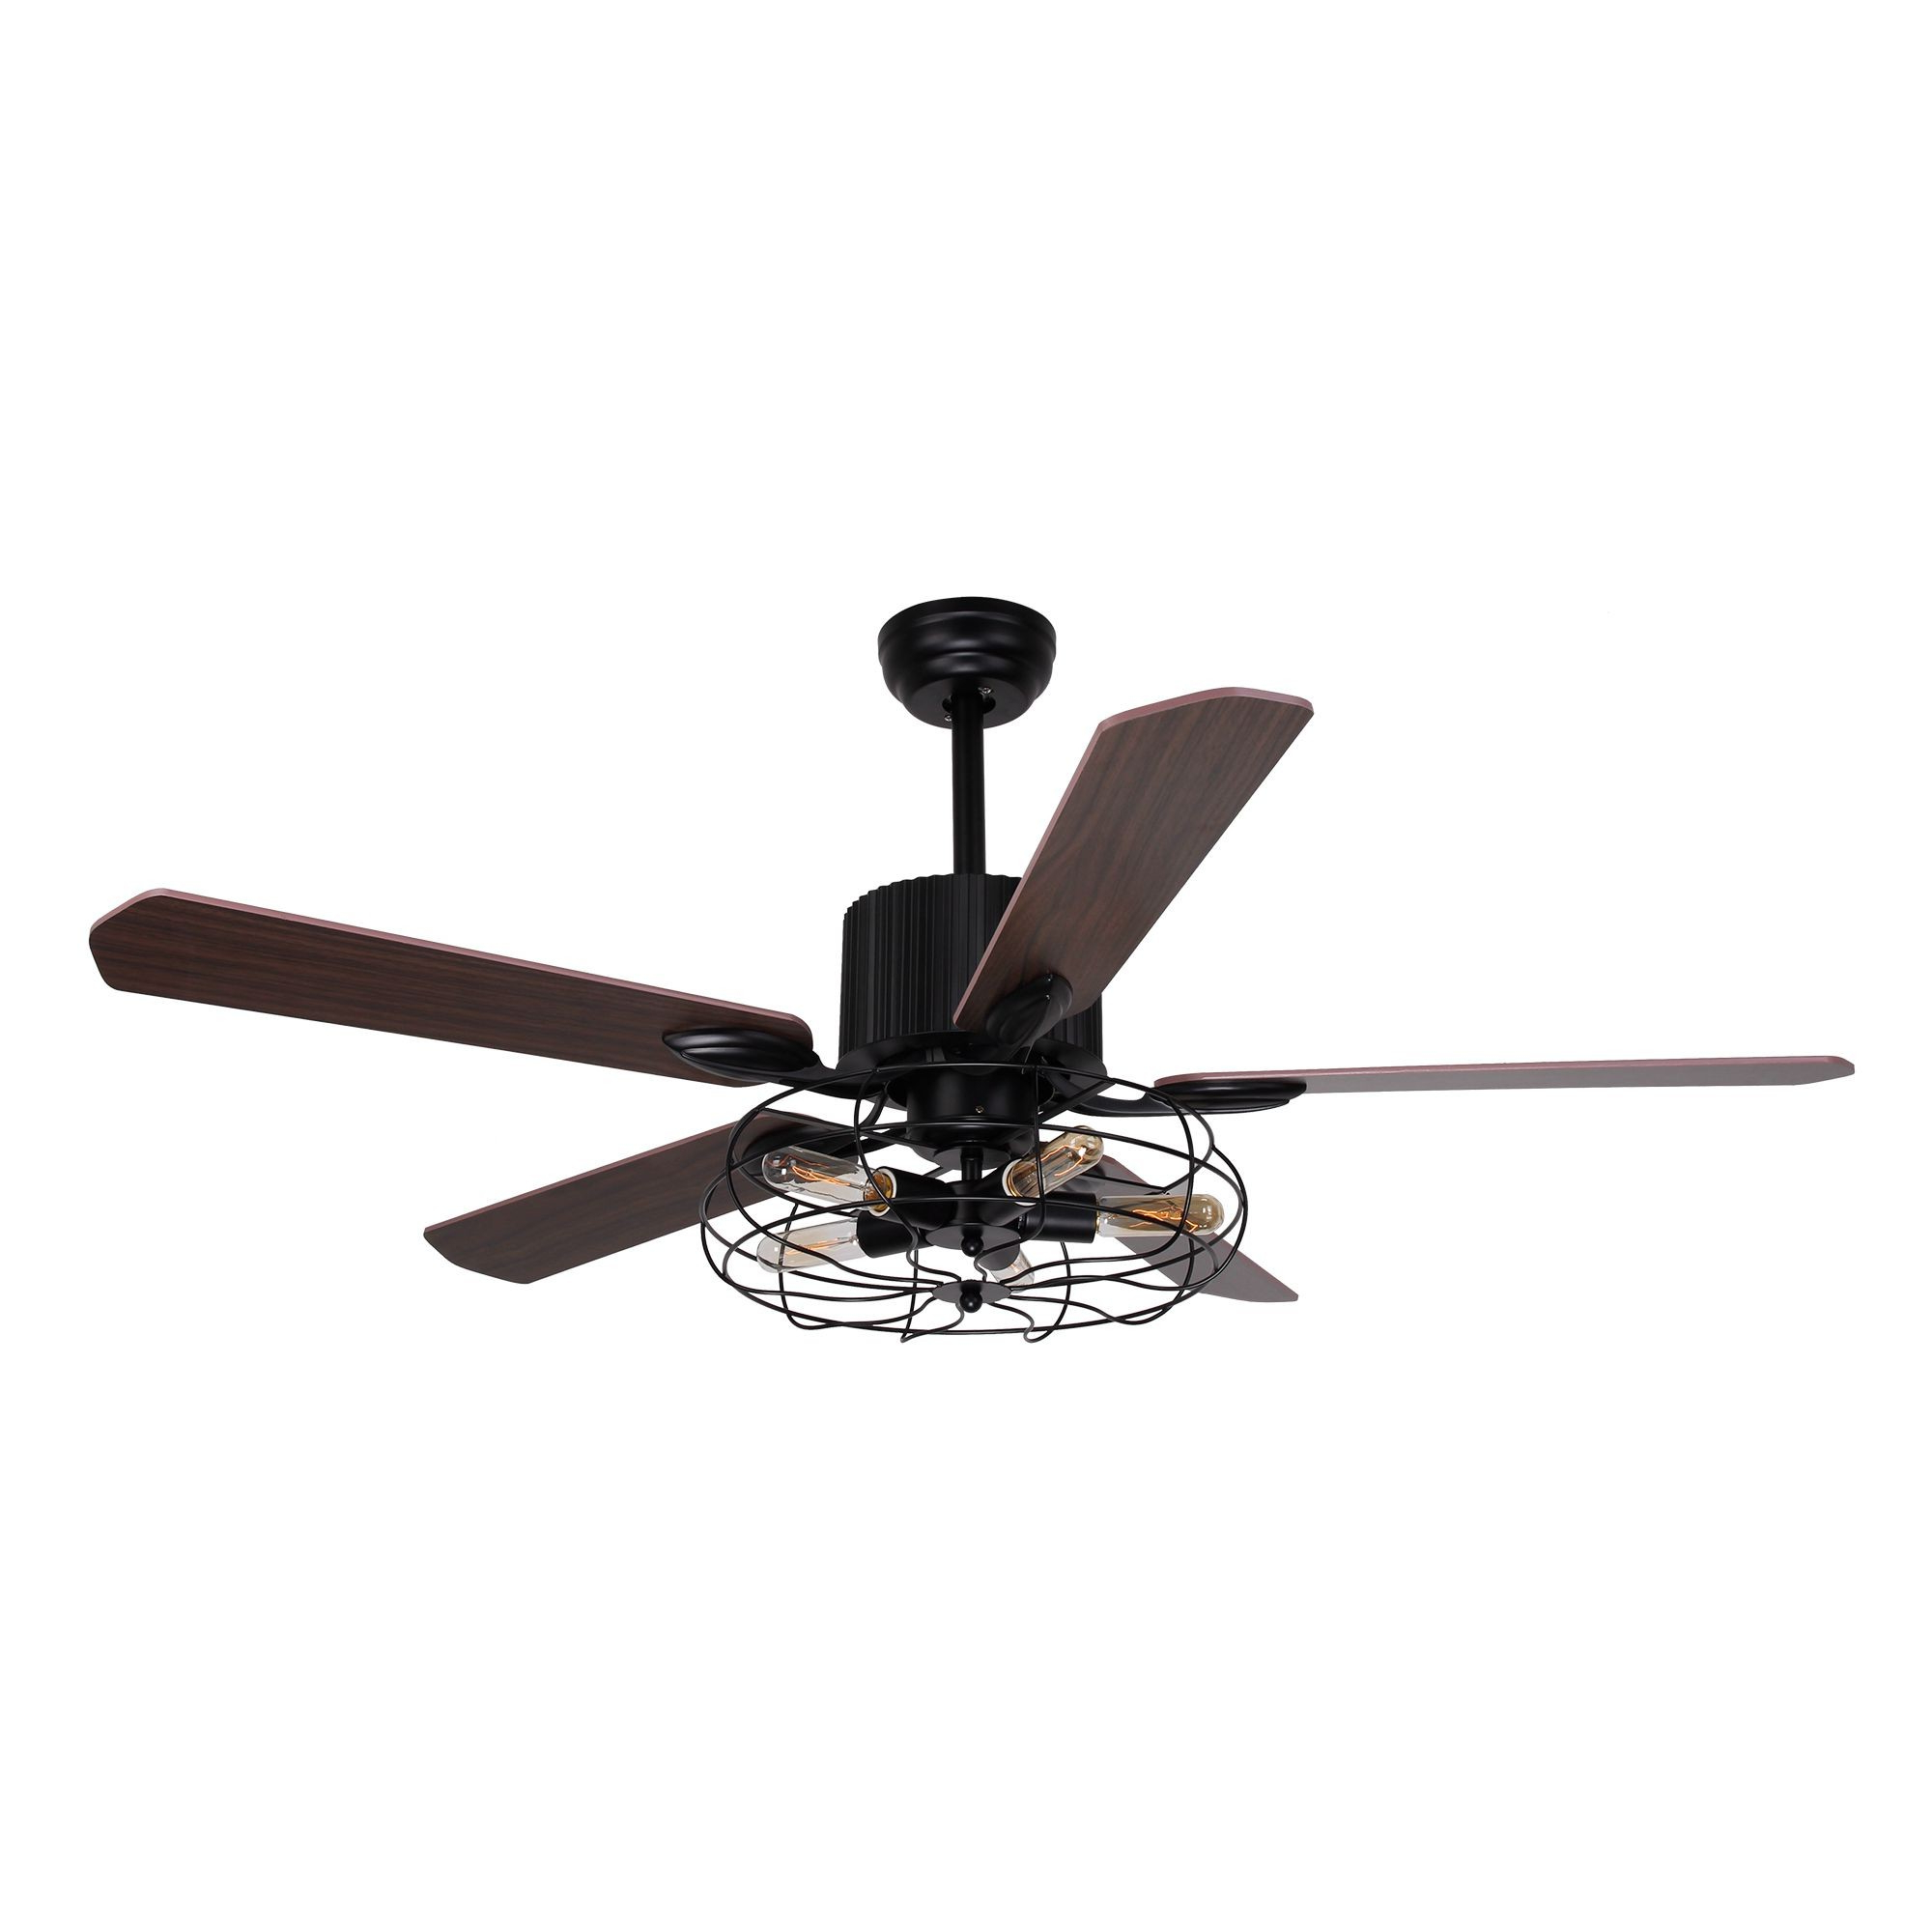 "Famous 52"" Roberts Industrial Caged Chandelier Ceiling Fan With Light And Remote Control, 5 Blades, Black With Regard To Roberts 5 Blade Ceiling Fans (View 3 of 20)"